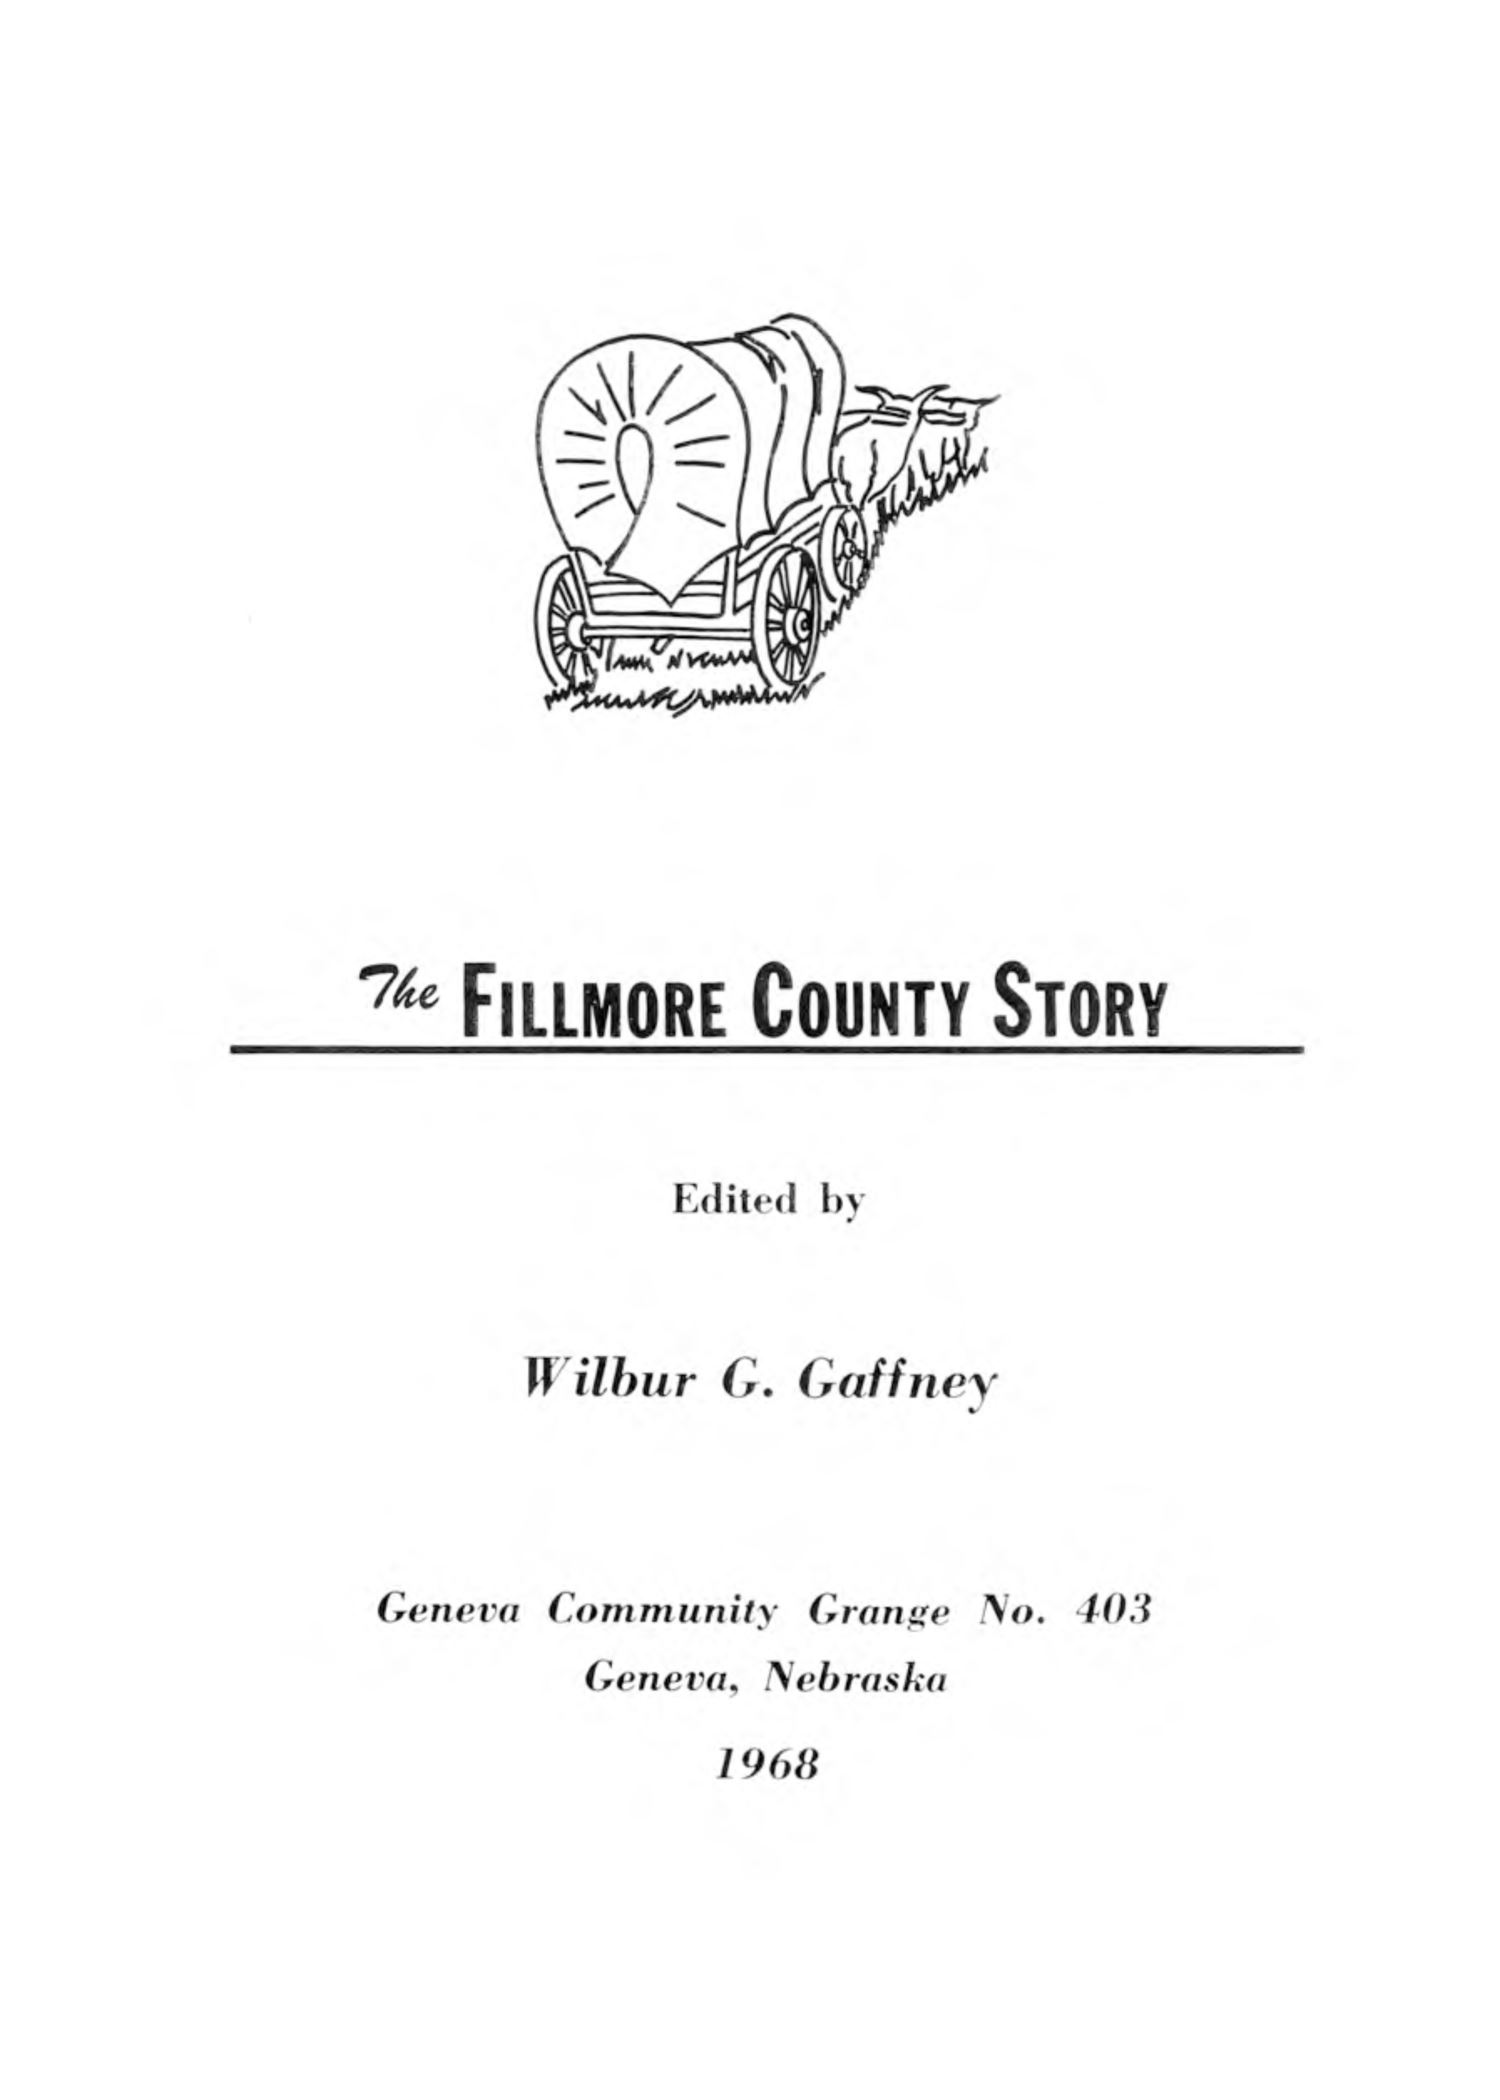 The Fillmore County Story, cover image